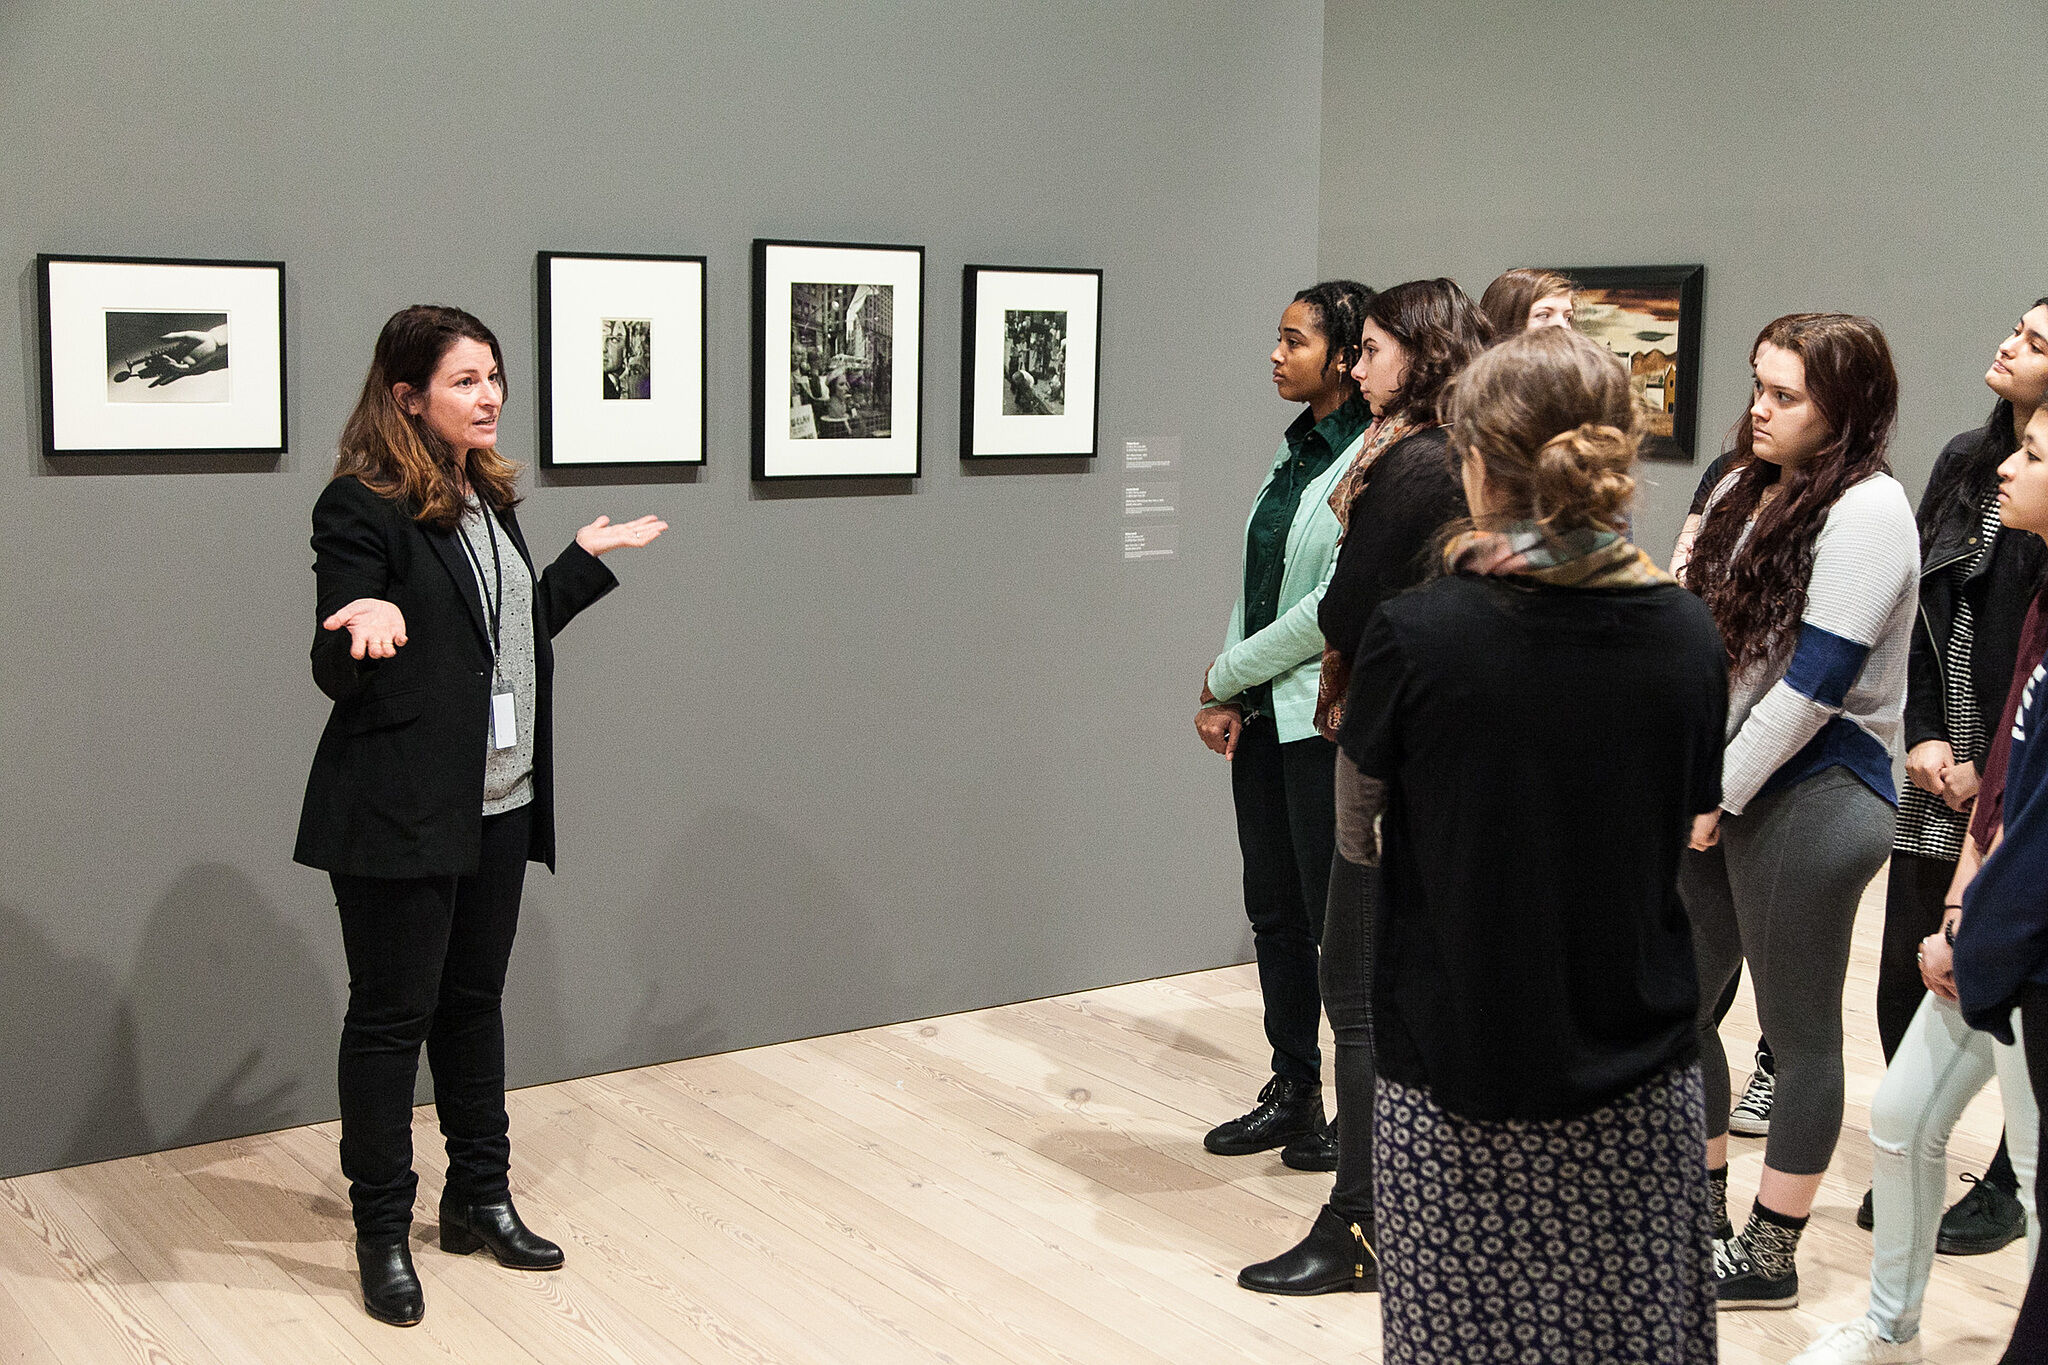 woman speaking to students in front of paintings